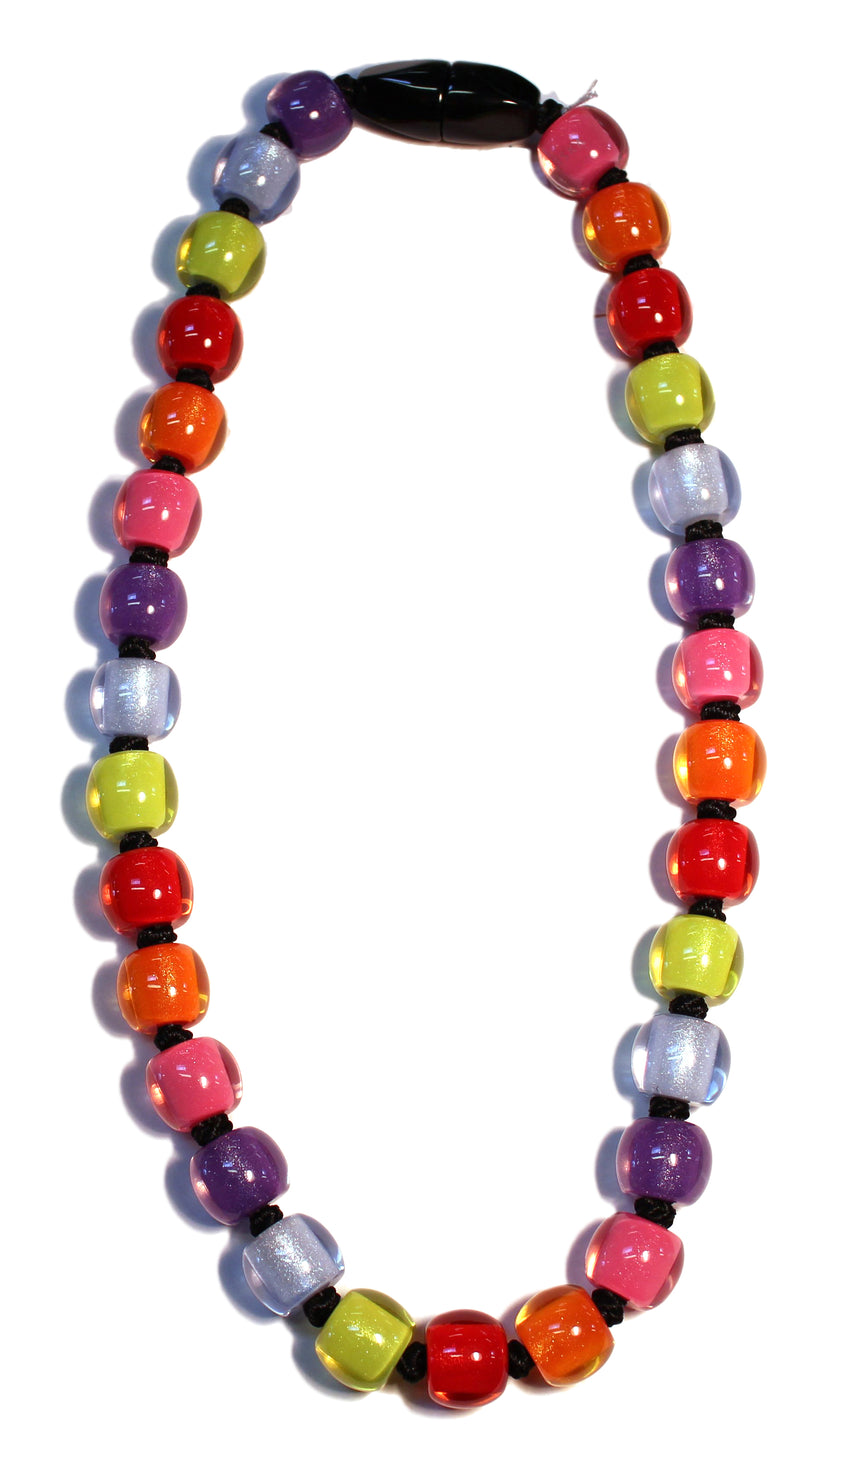 40101190400Q30 Colourful Beads Spectrum 0400 Q30